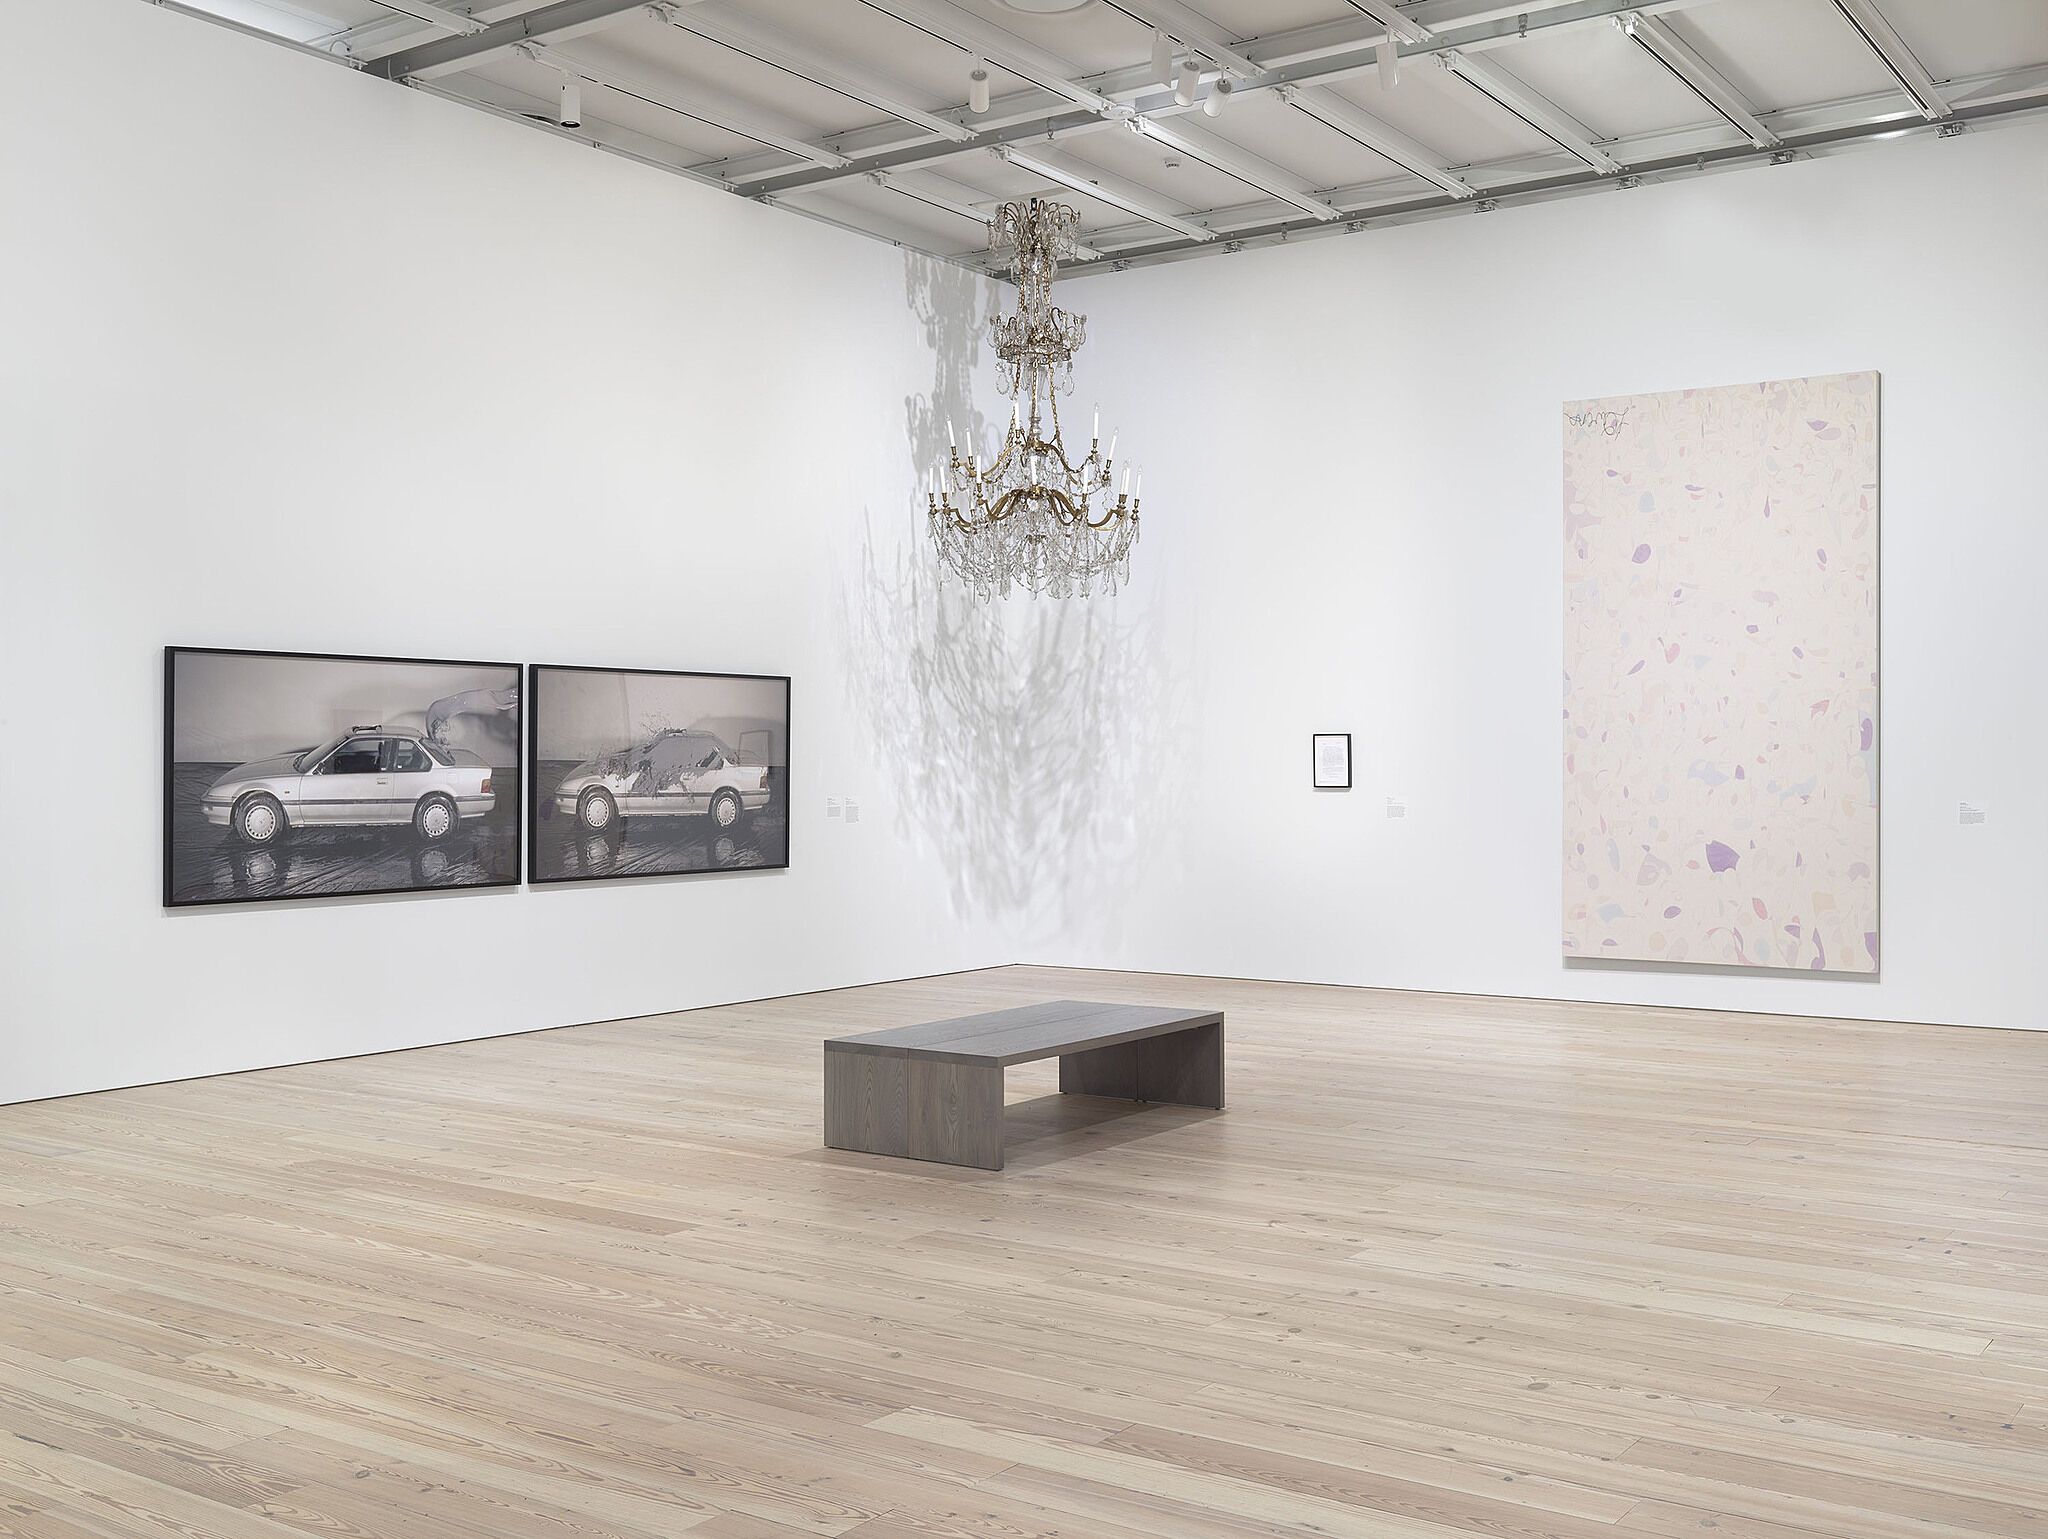 A bench sits in front of two photos of cars, a hanging sculpture and a large-scale painting on the wall.